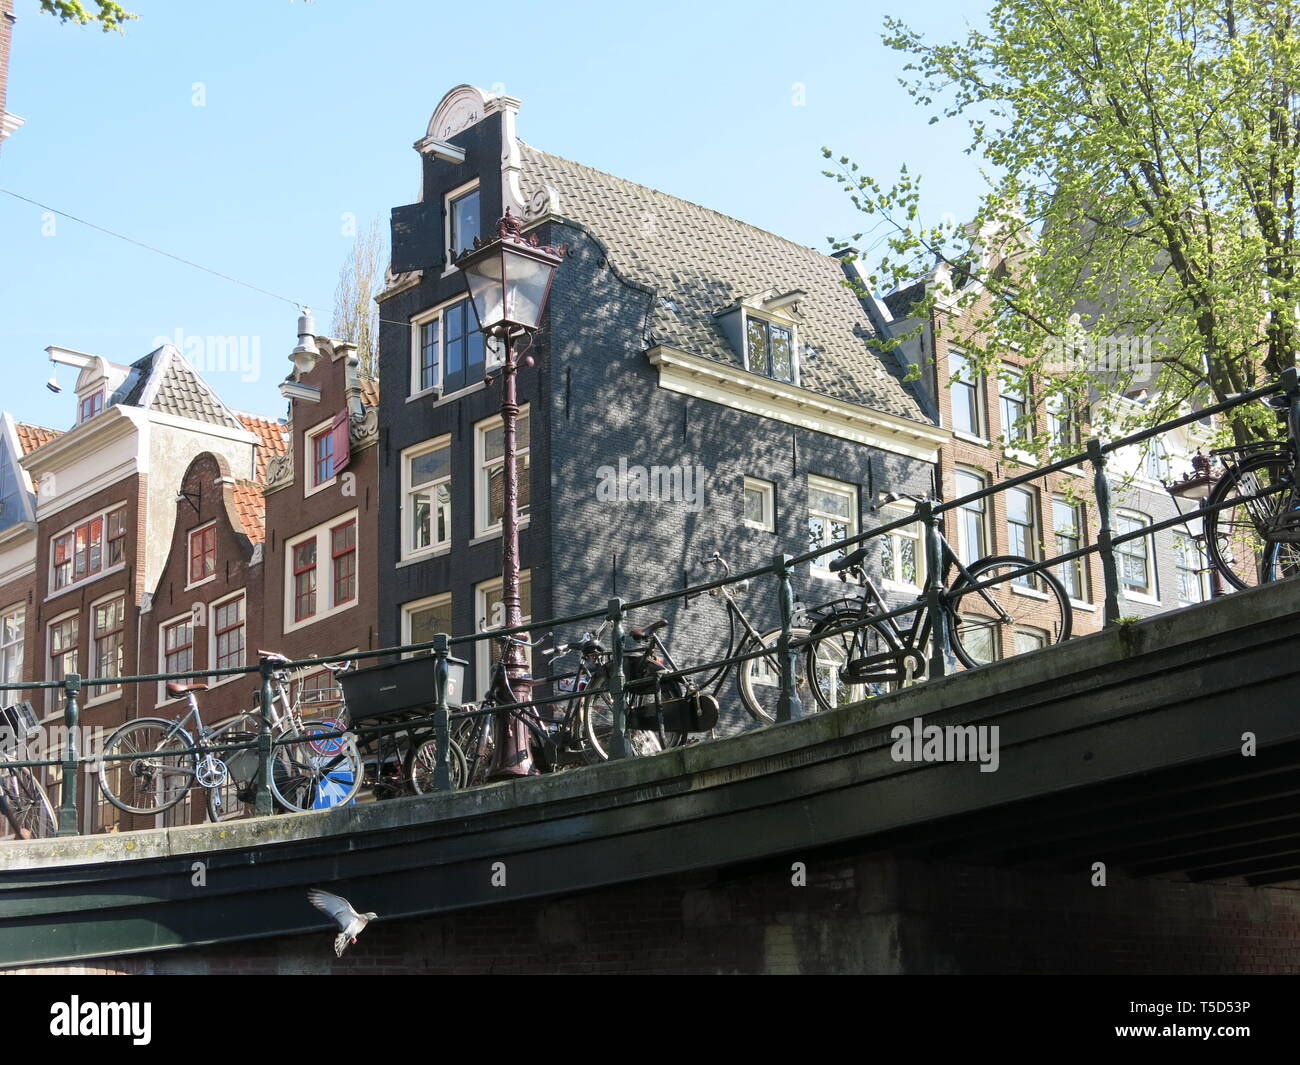 A typical Dutch scene in Amsterdam with bicycles parked along the railings of a canal bridge and tall houses with gables in the background - Stock Image